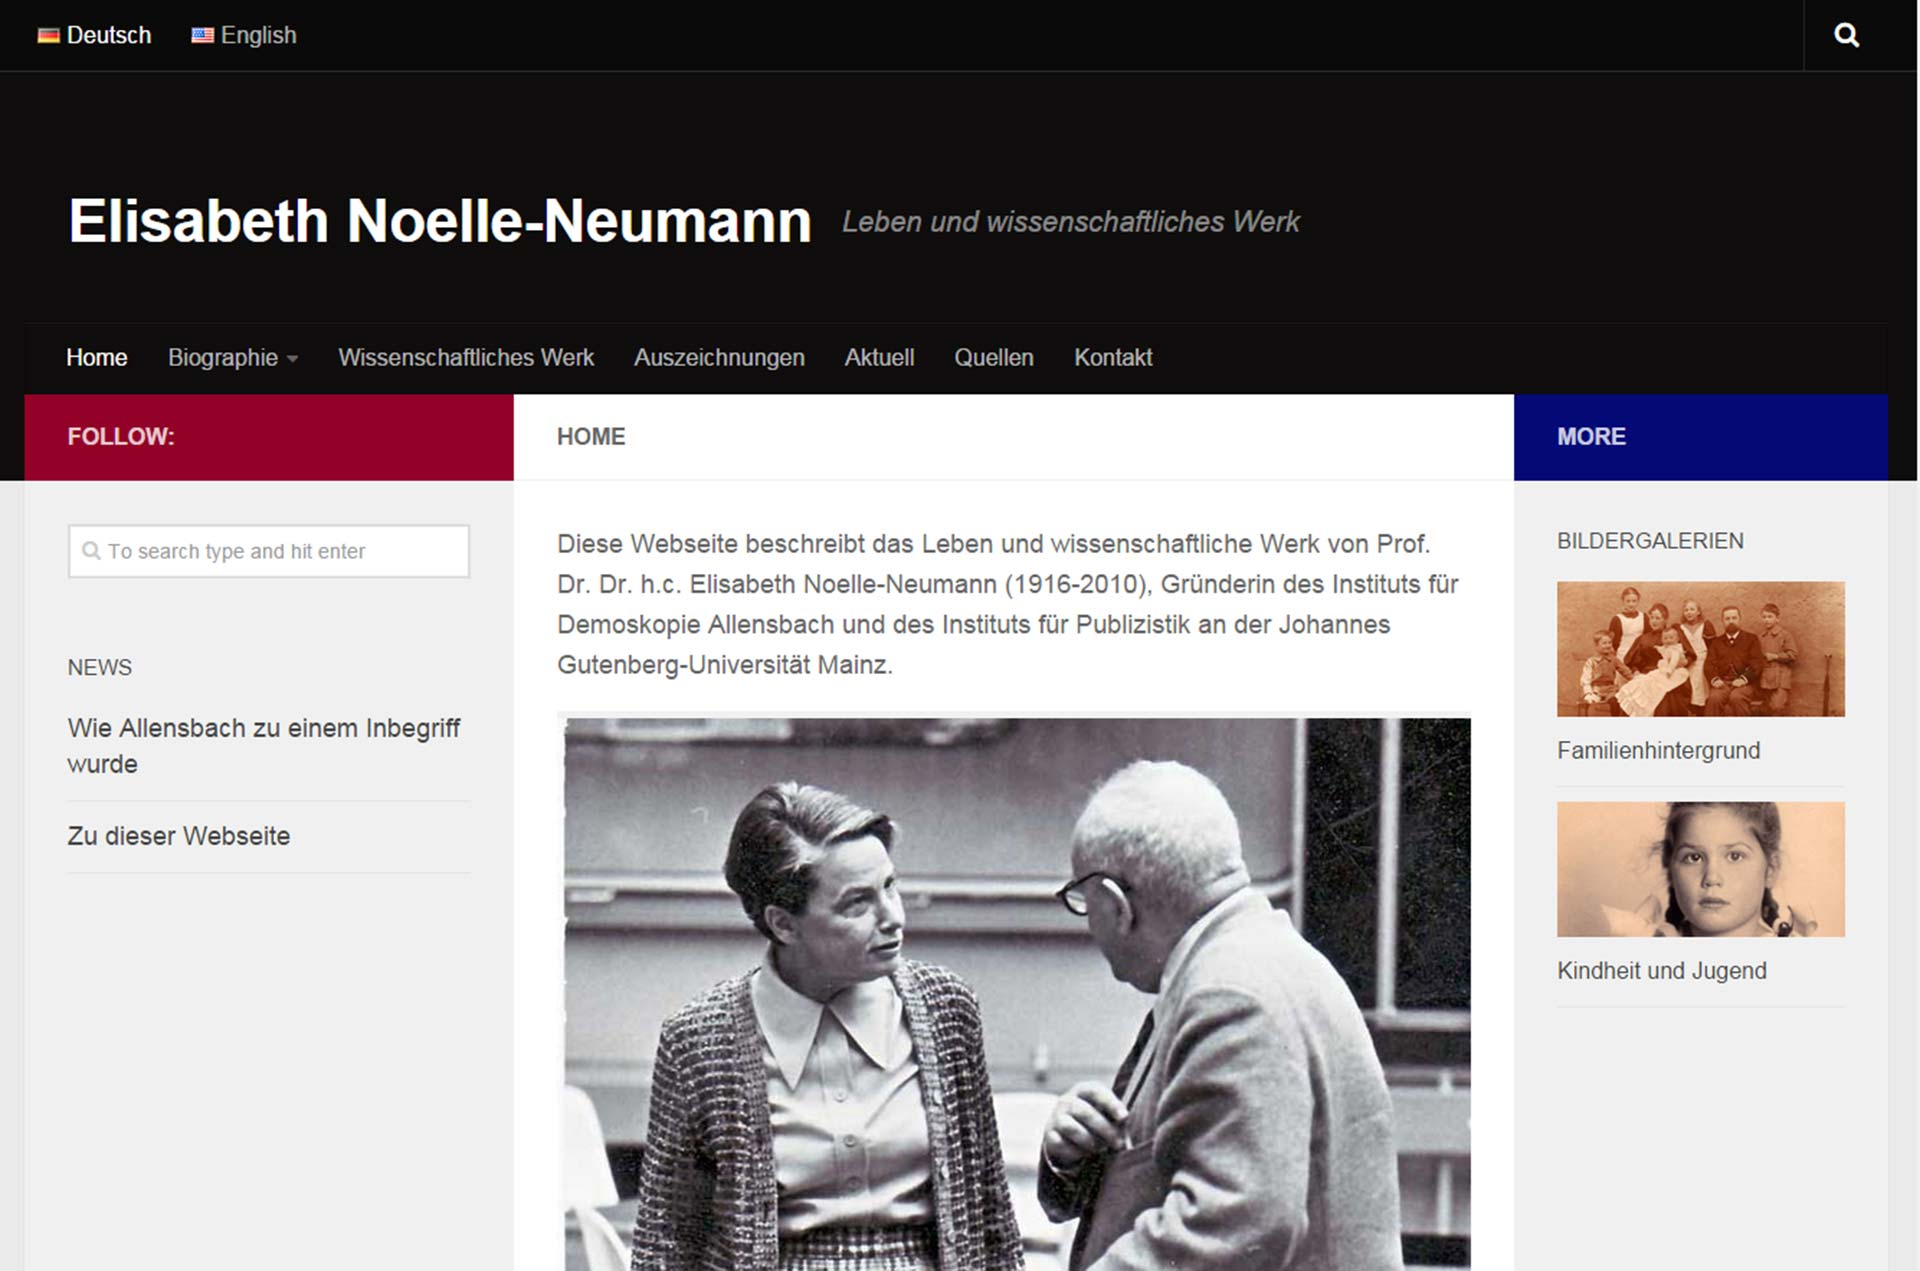 Elisabeth Noelle-Neumann Multilingual Website